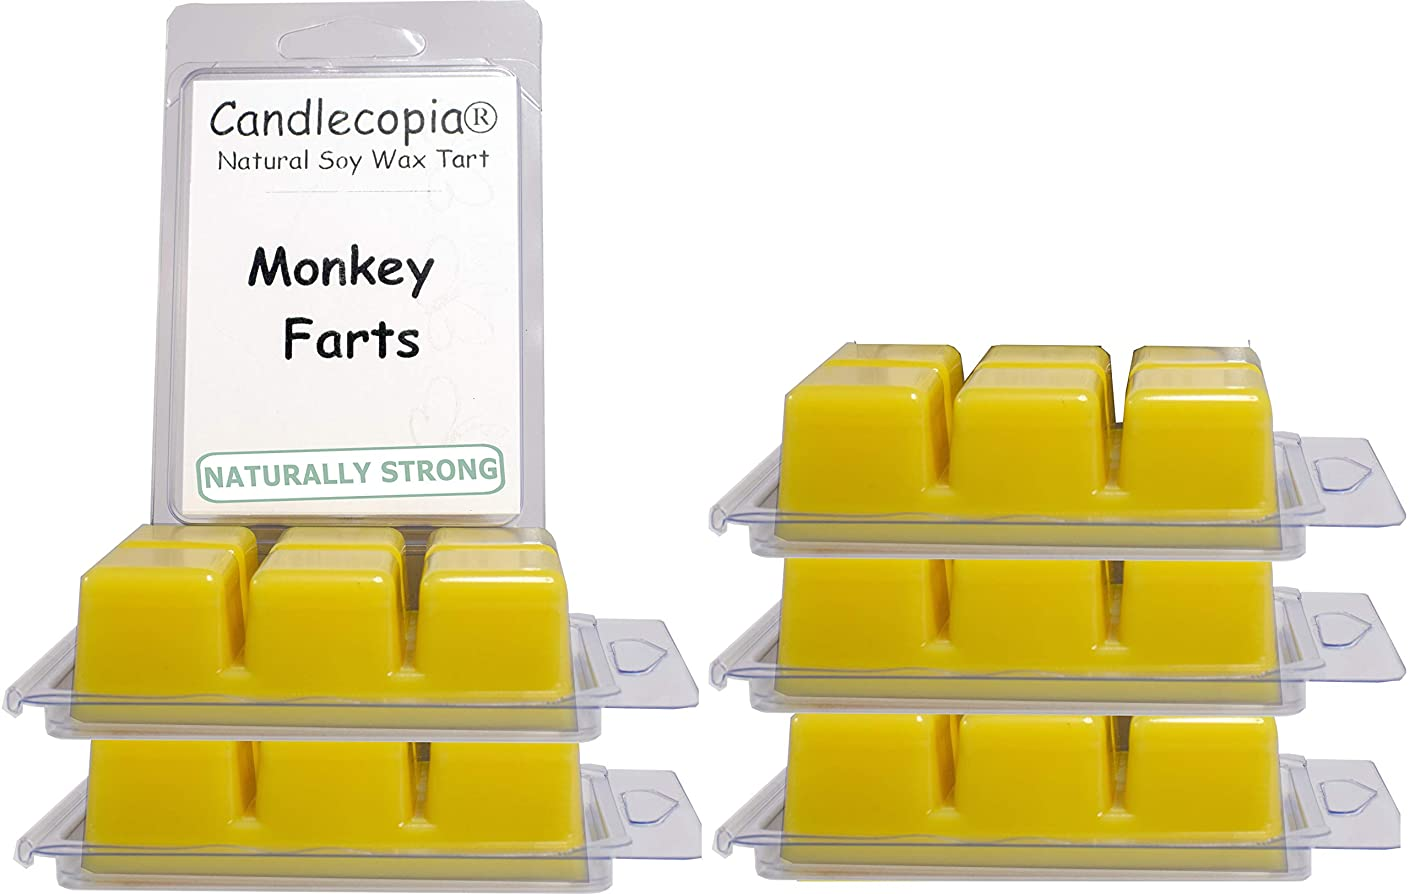 Candlecopia Monkey Farts Strongly Scented Hand Poured Vegan Wax Melts, 36 Scented Wax Cubes, 19.2 Ounces in 6 x 6-Packs